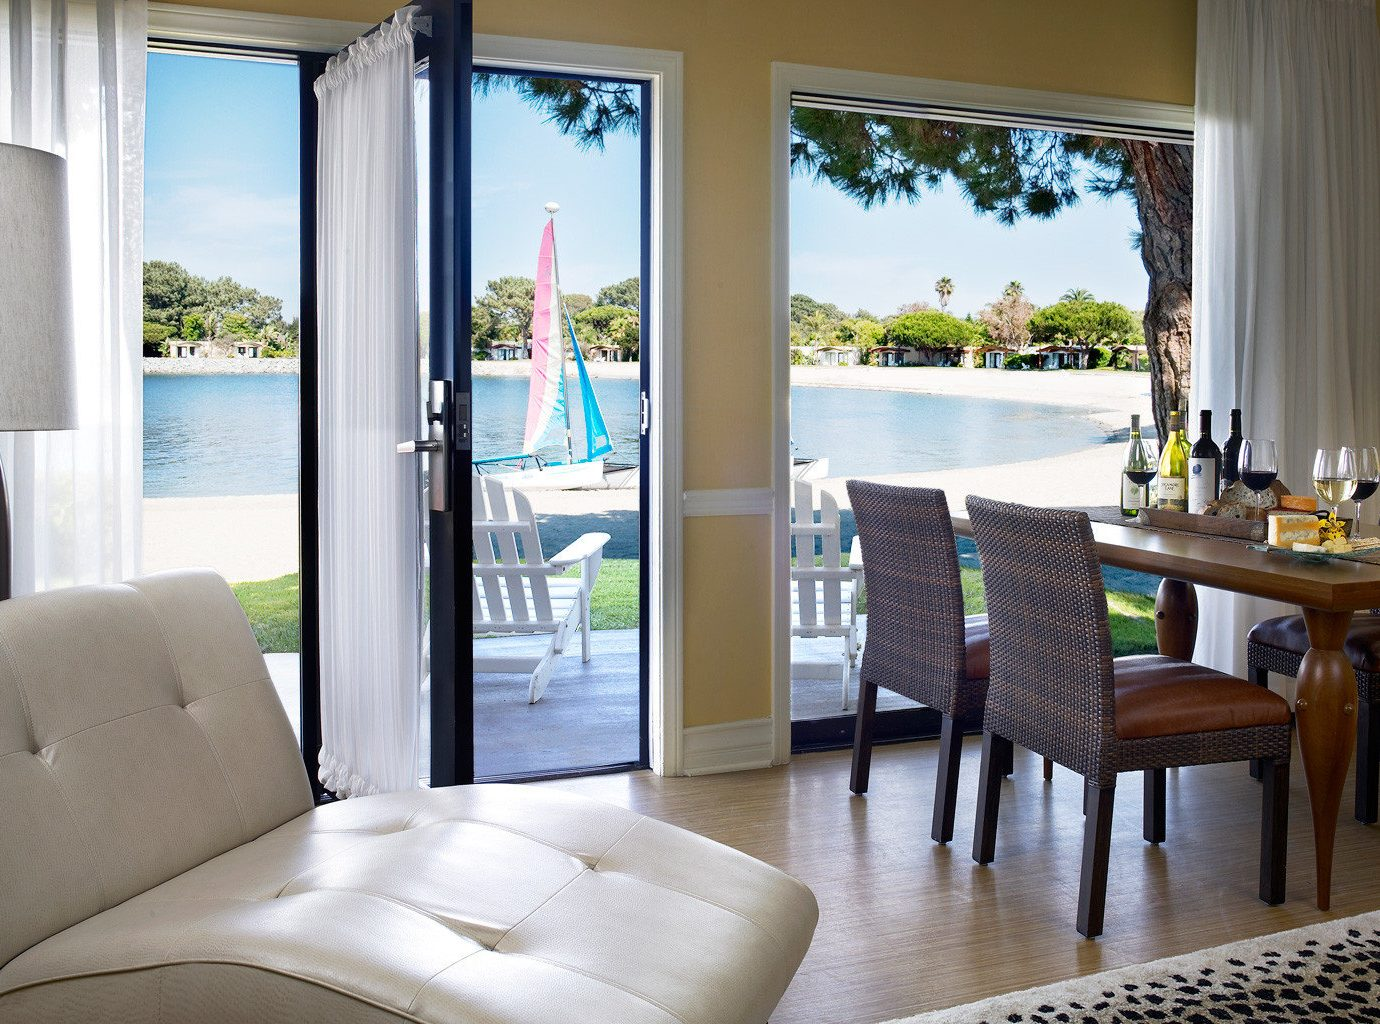 Beachfront Boat Ocean Patio Resort Terrace property home living room condominium cottage porch Villa Suite